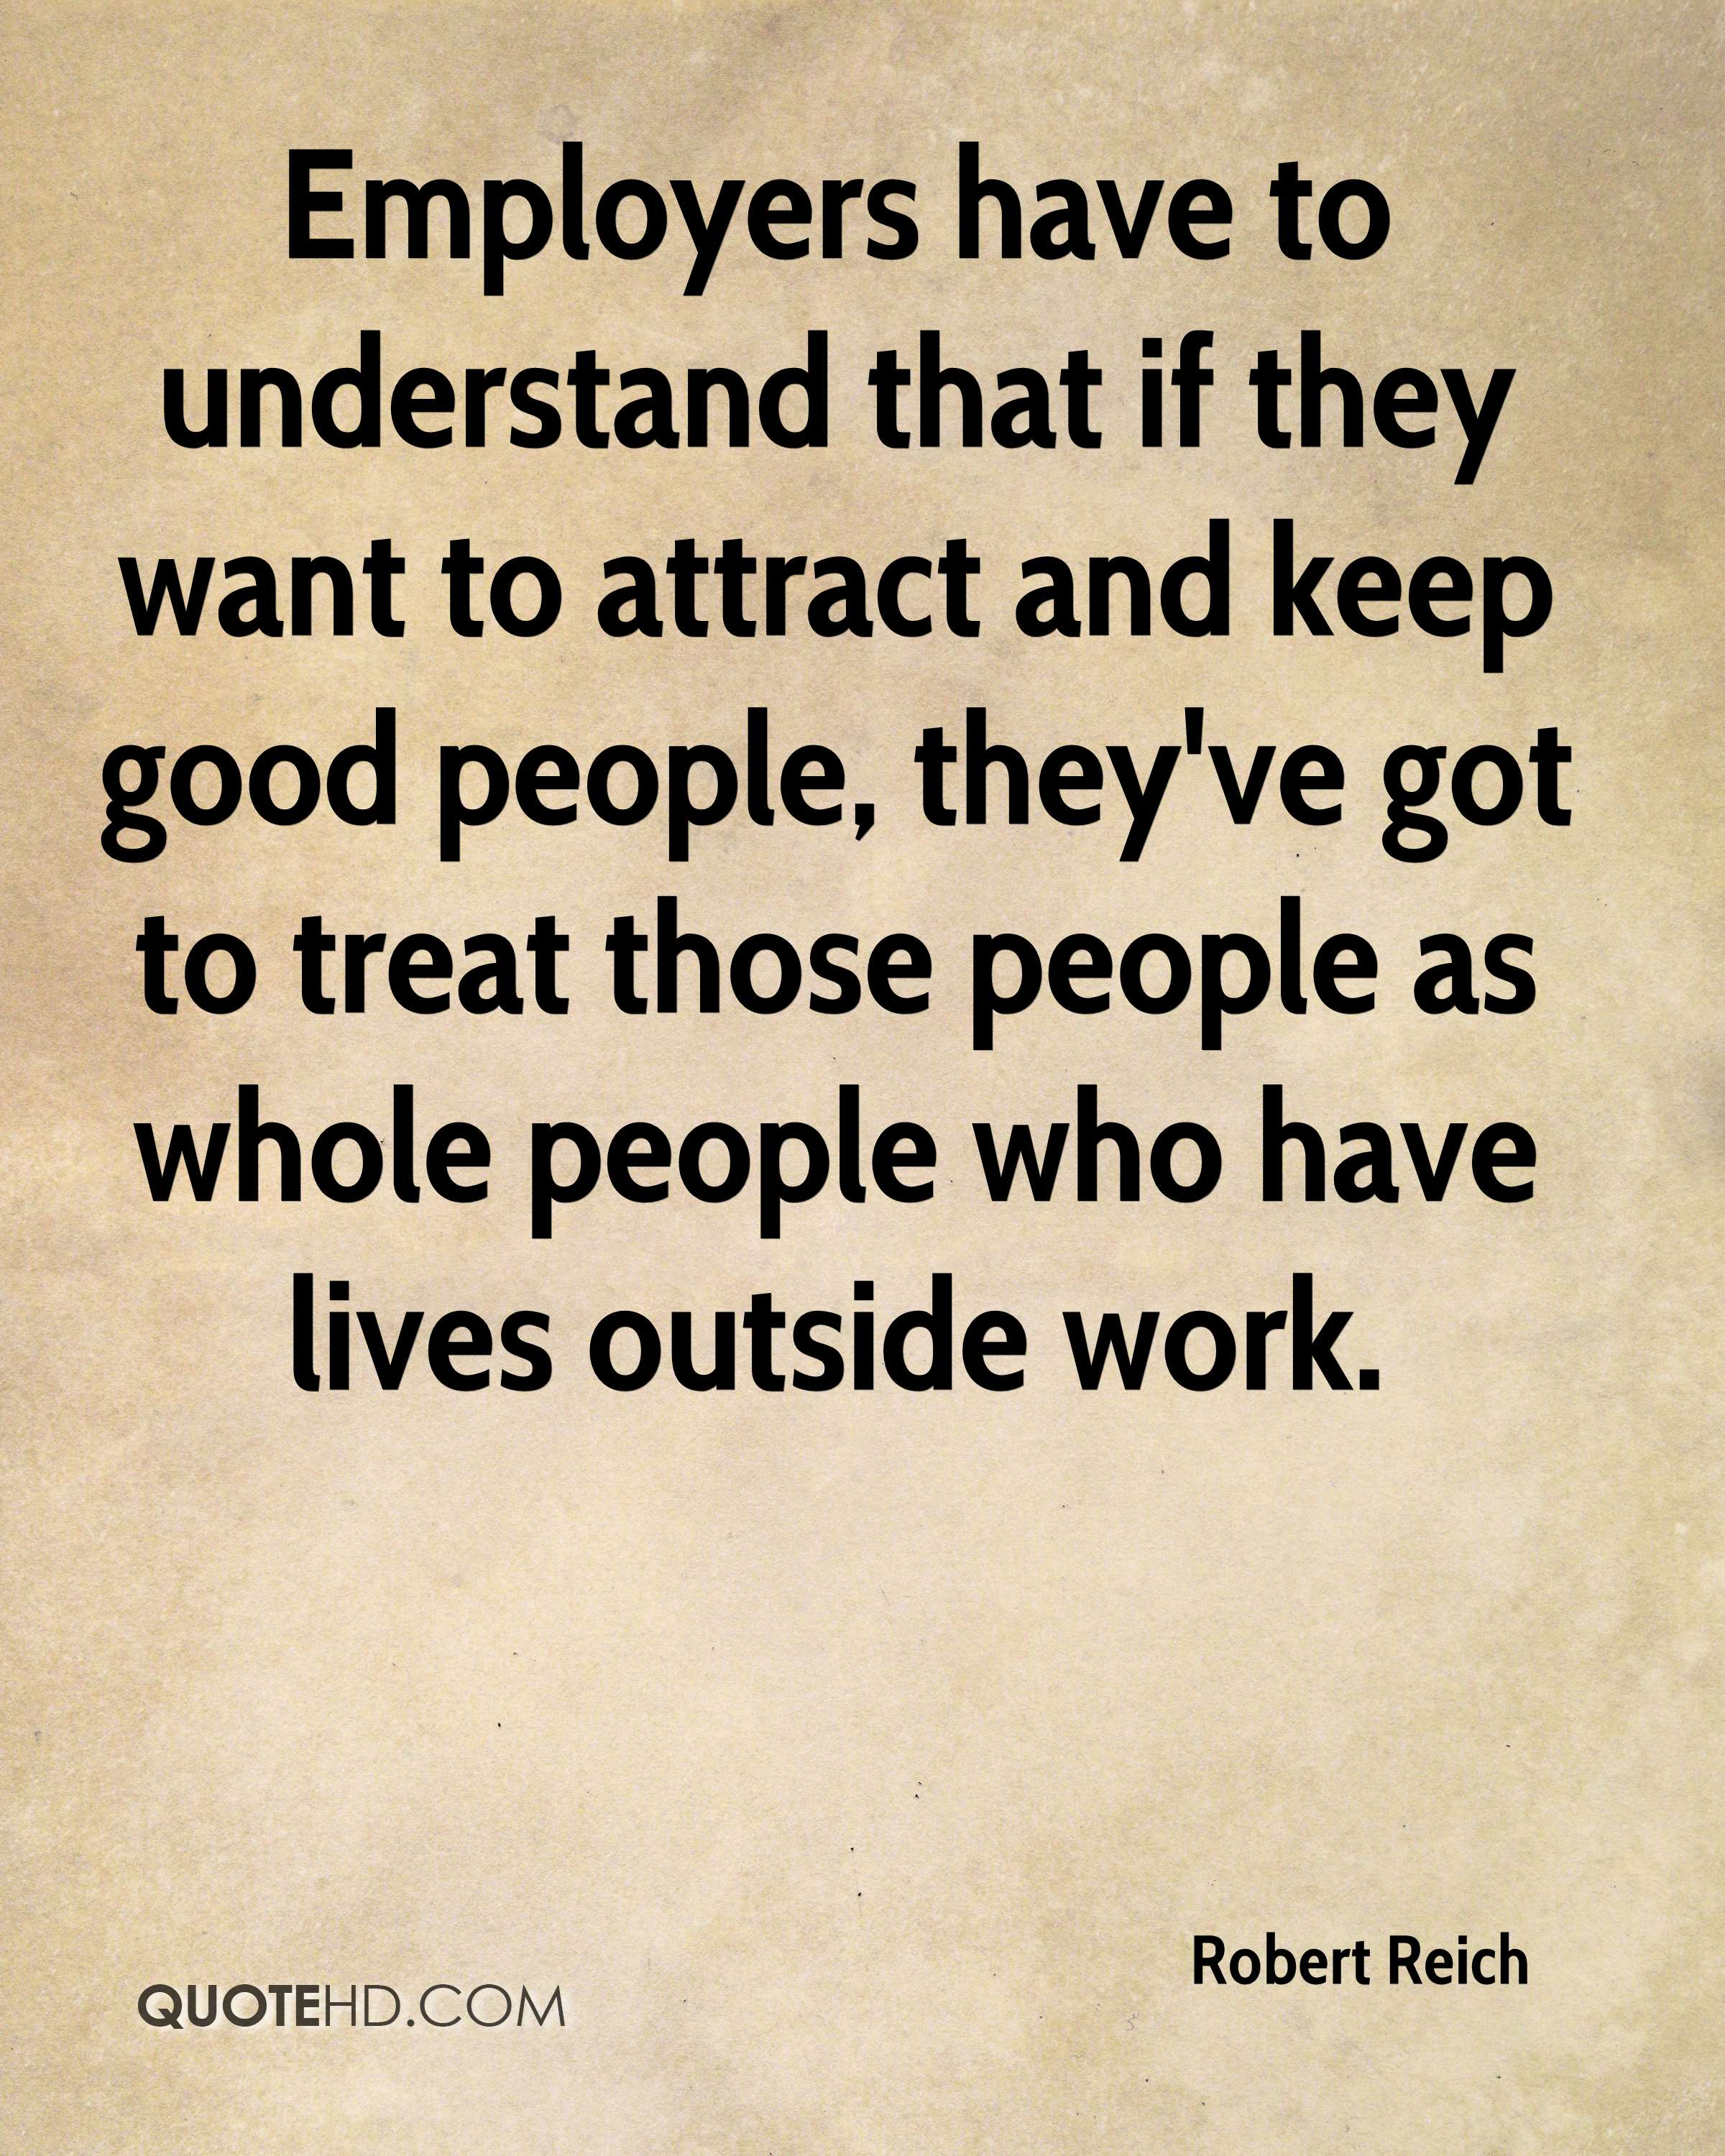 Employers have to understand that if they want to attract and keep good people, they've got to treat those people as whole people who have lives outside work.